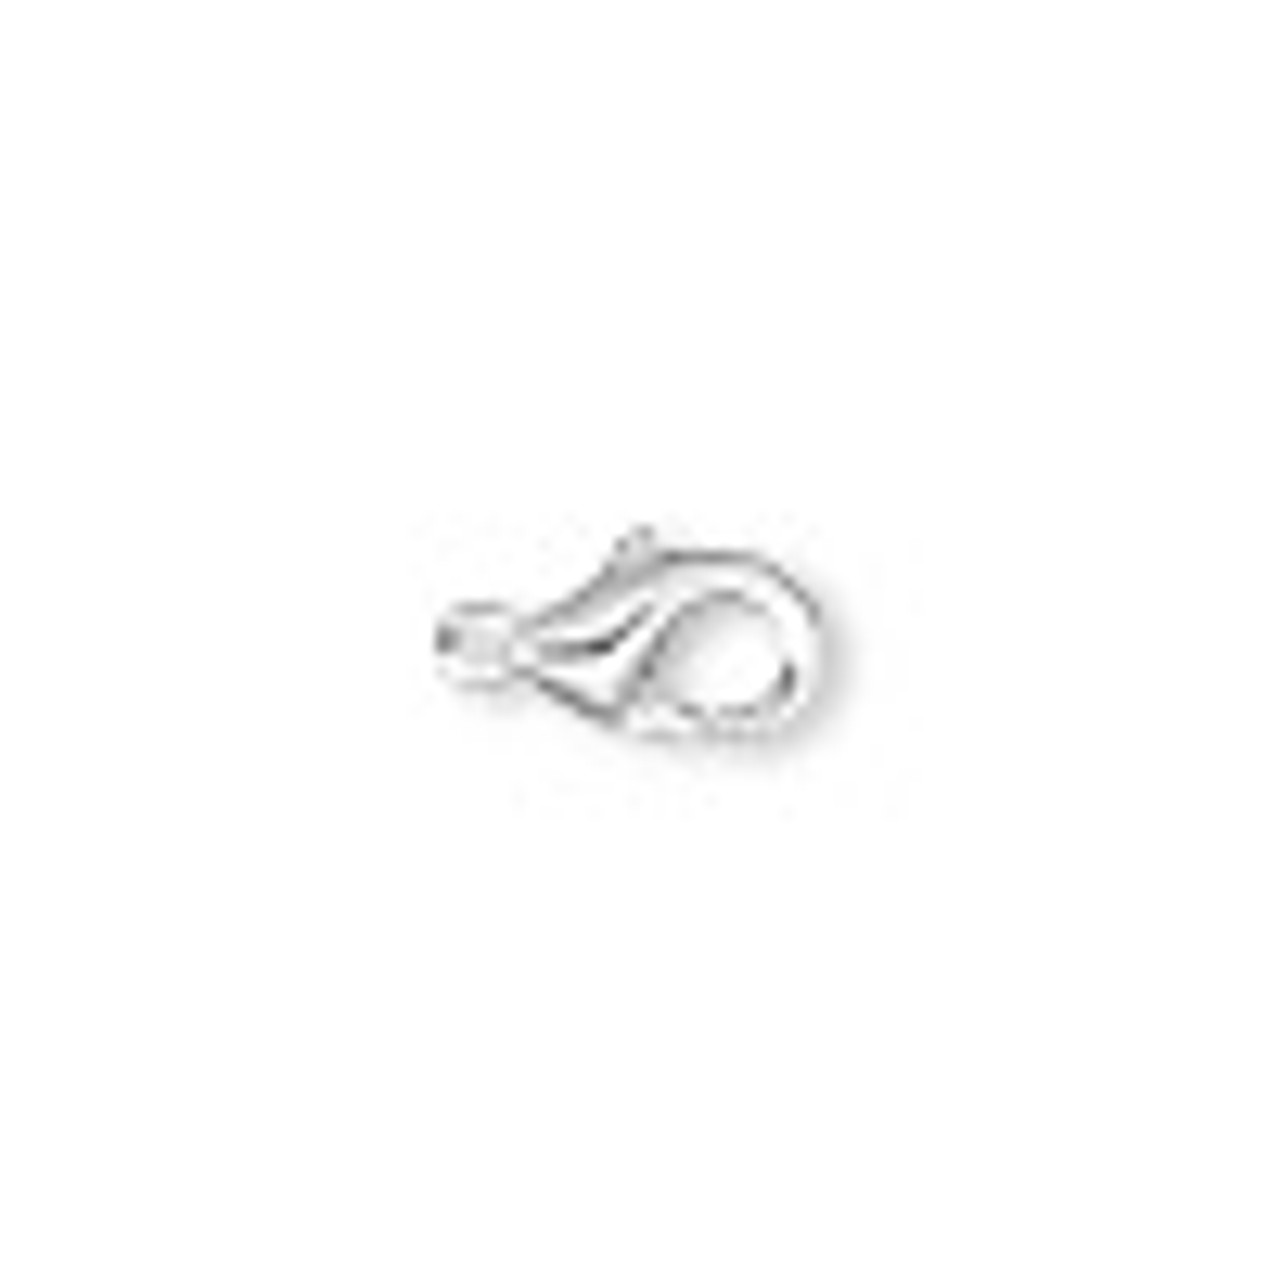 11x7mm Silver Plated Lobster Claw (6 Pack)